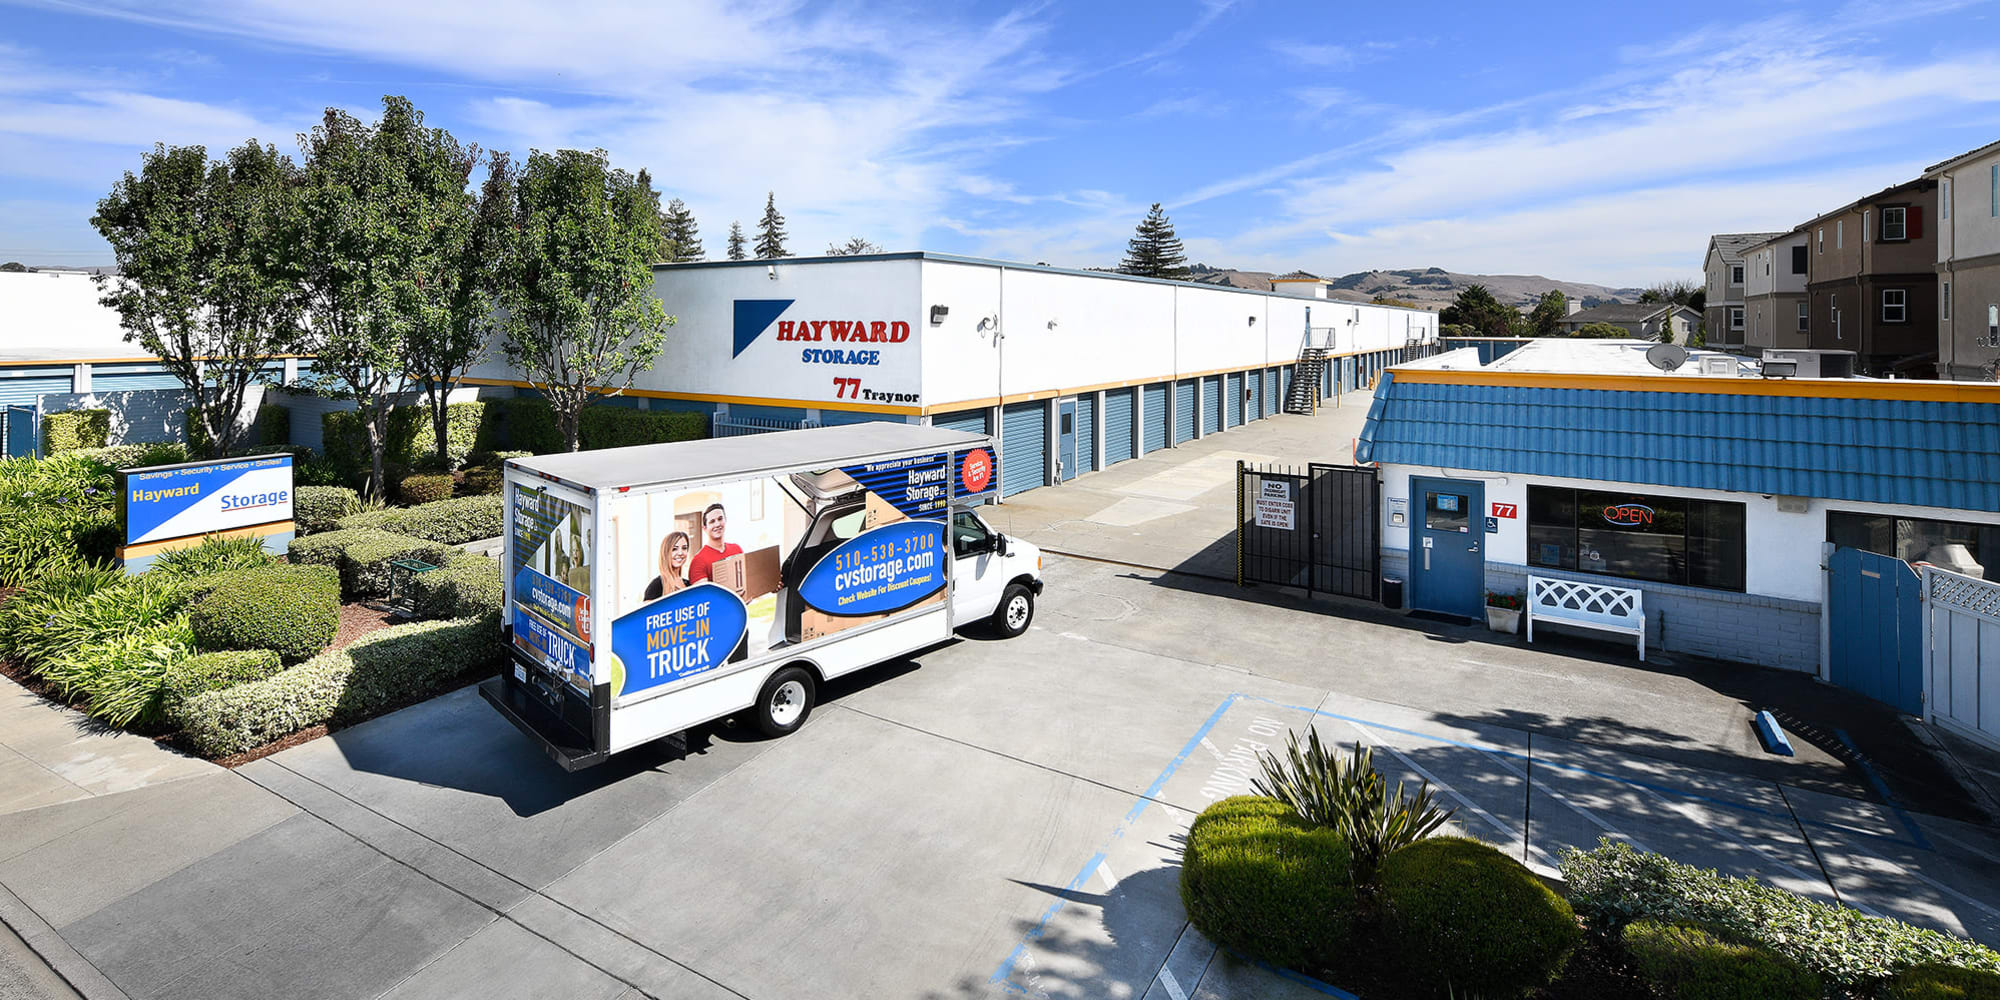 Outside view and moving truck at Hayward Storage LLC in Hayward, California